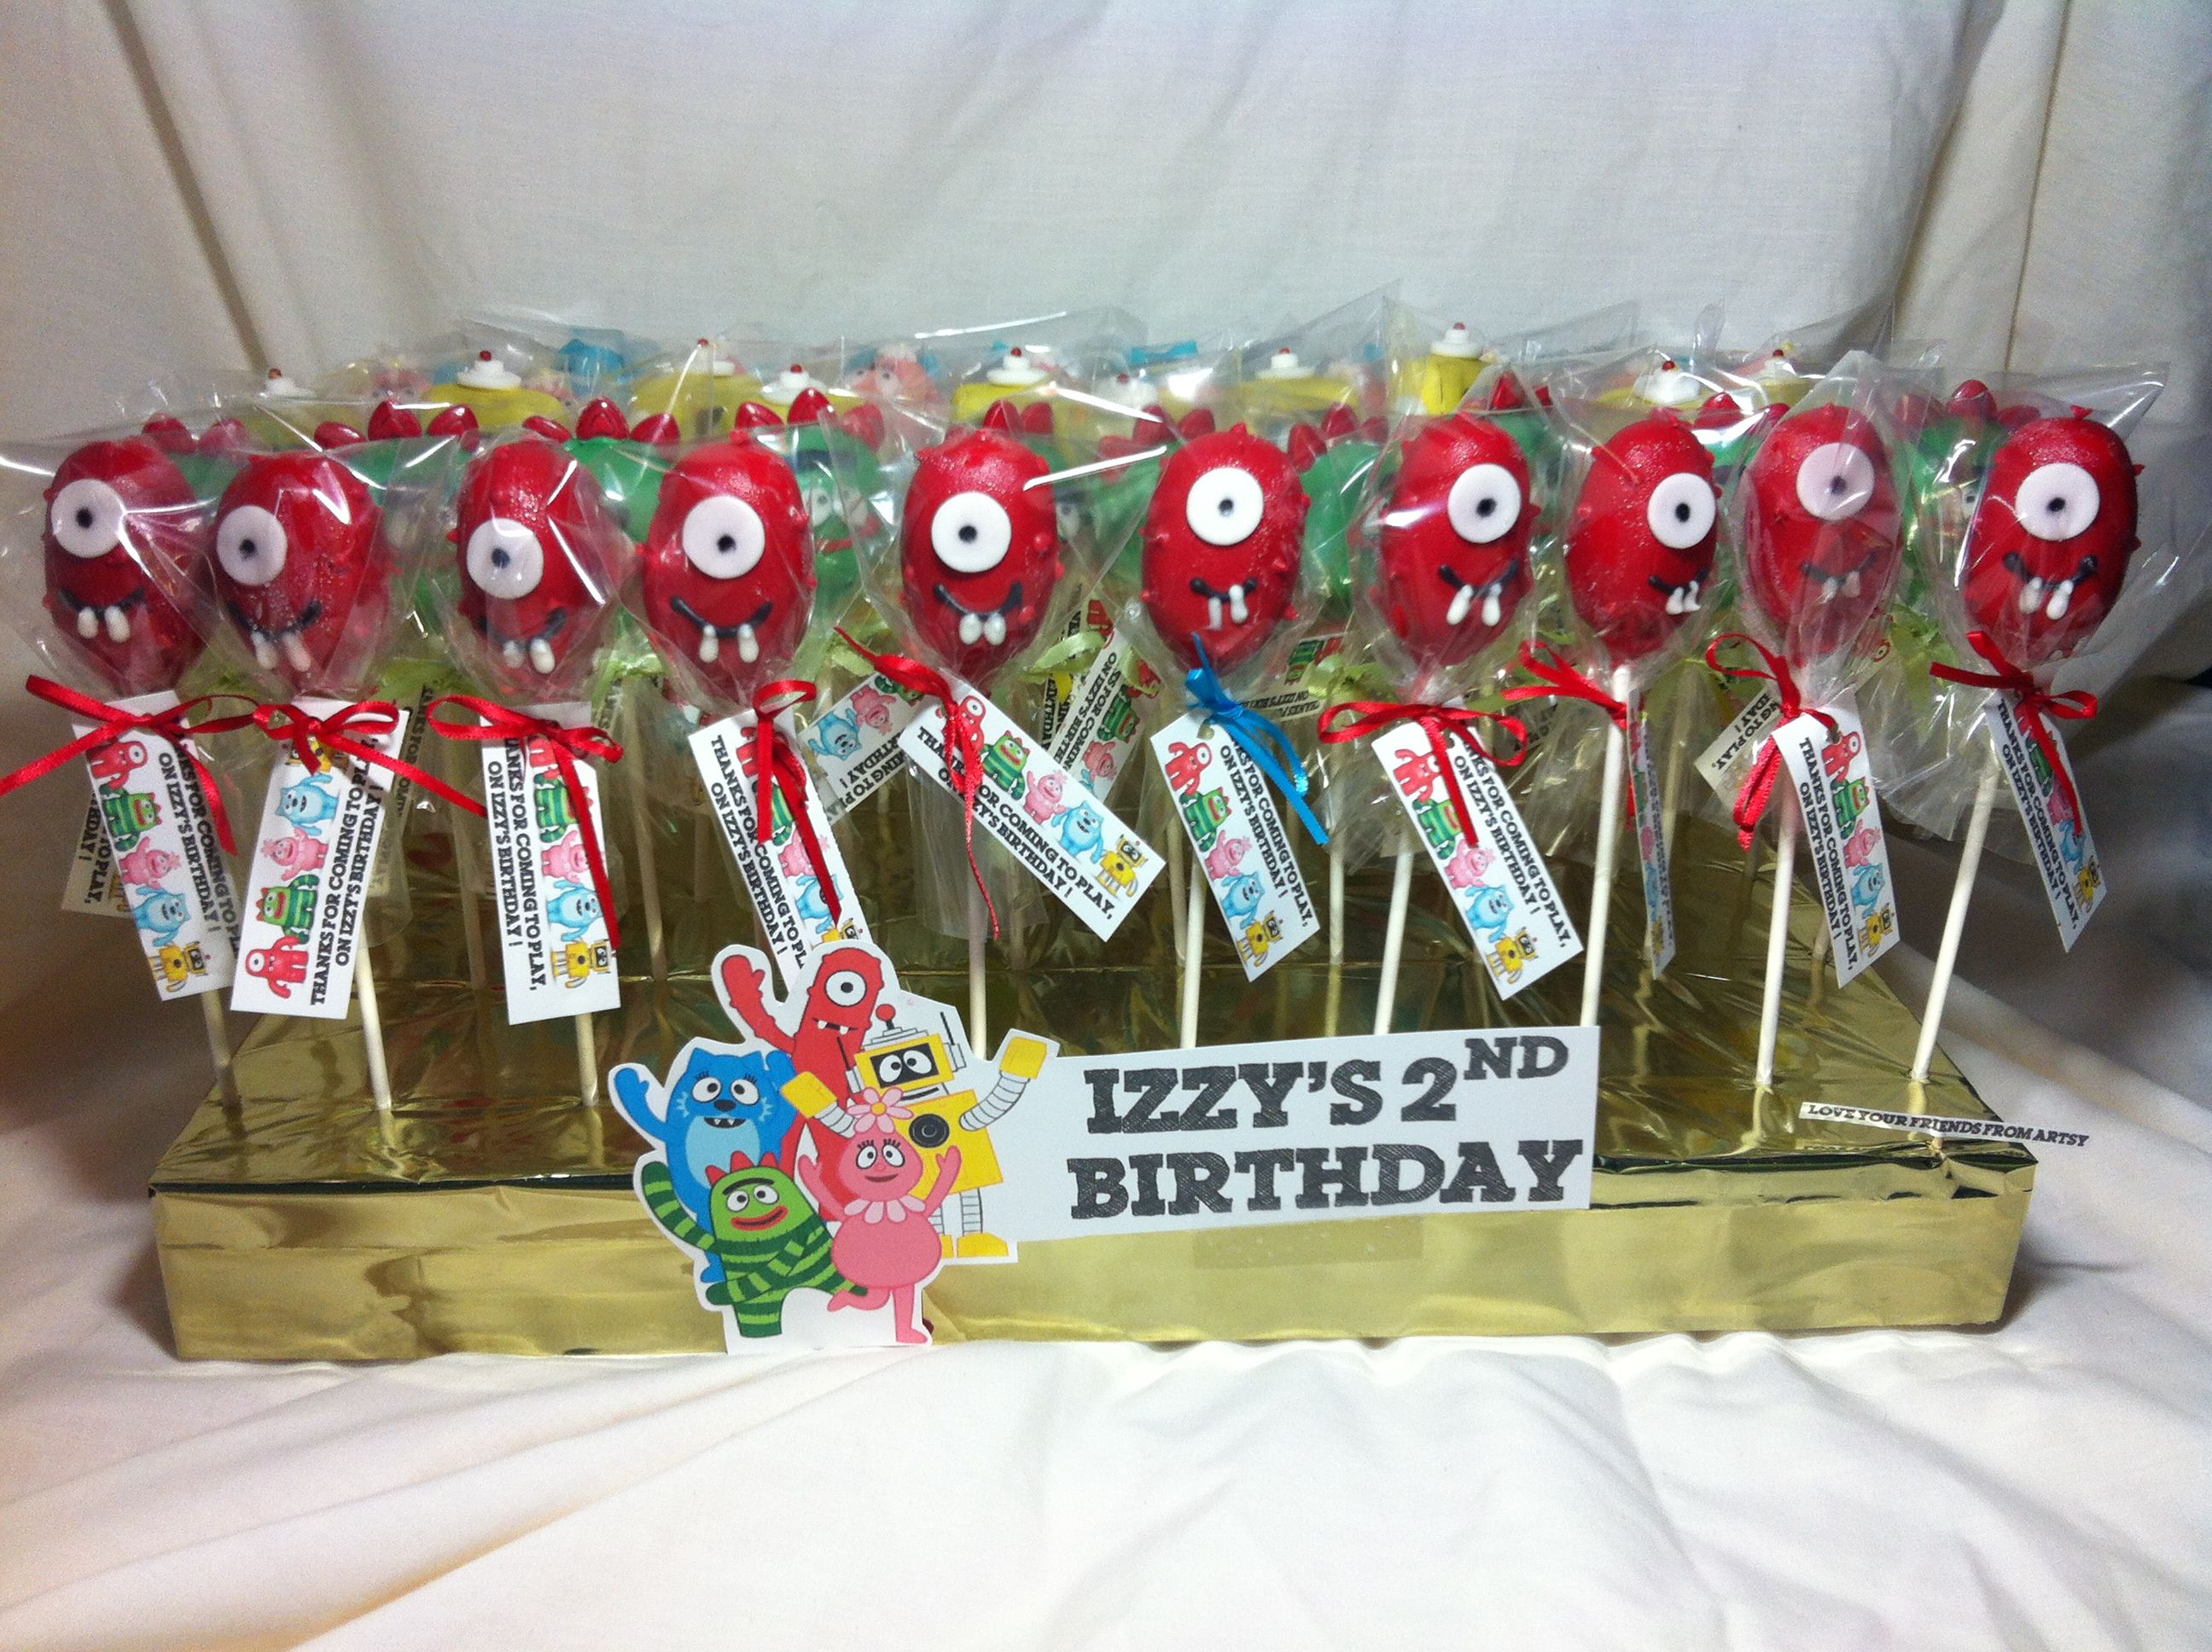 Izzy's 2nd Birthday  Cakepops made with L♥VE by your ladies from ArtSy! #cakepops #sweets #artsycc